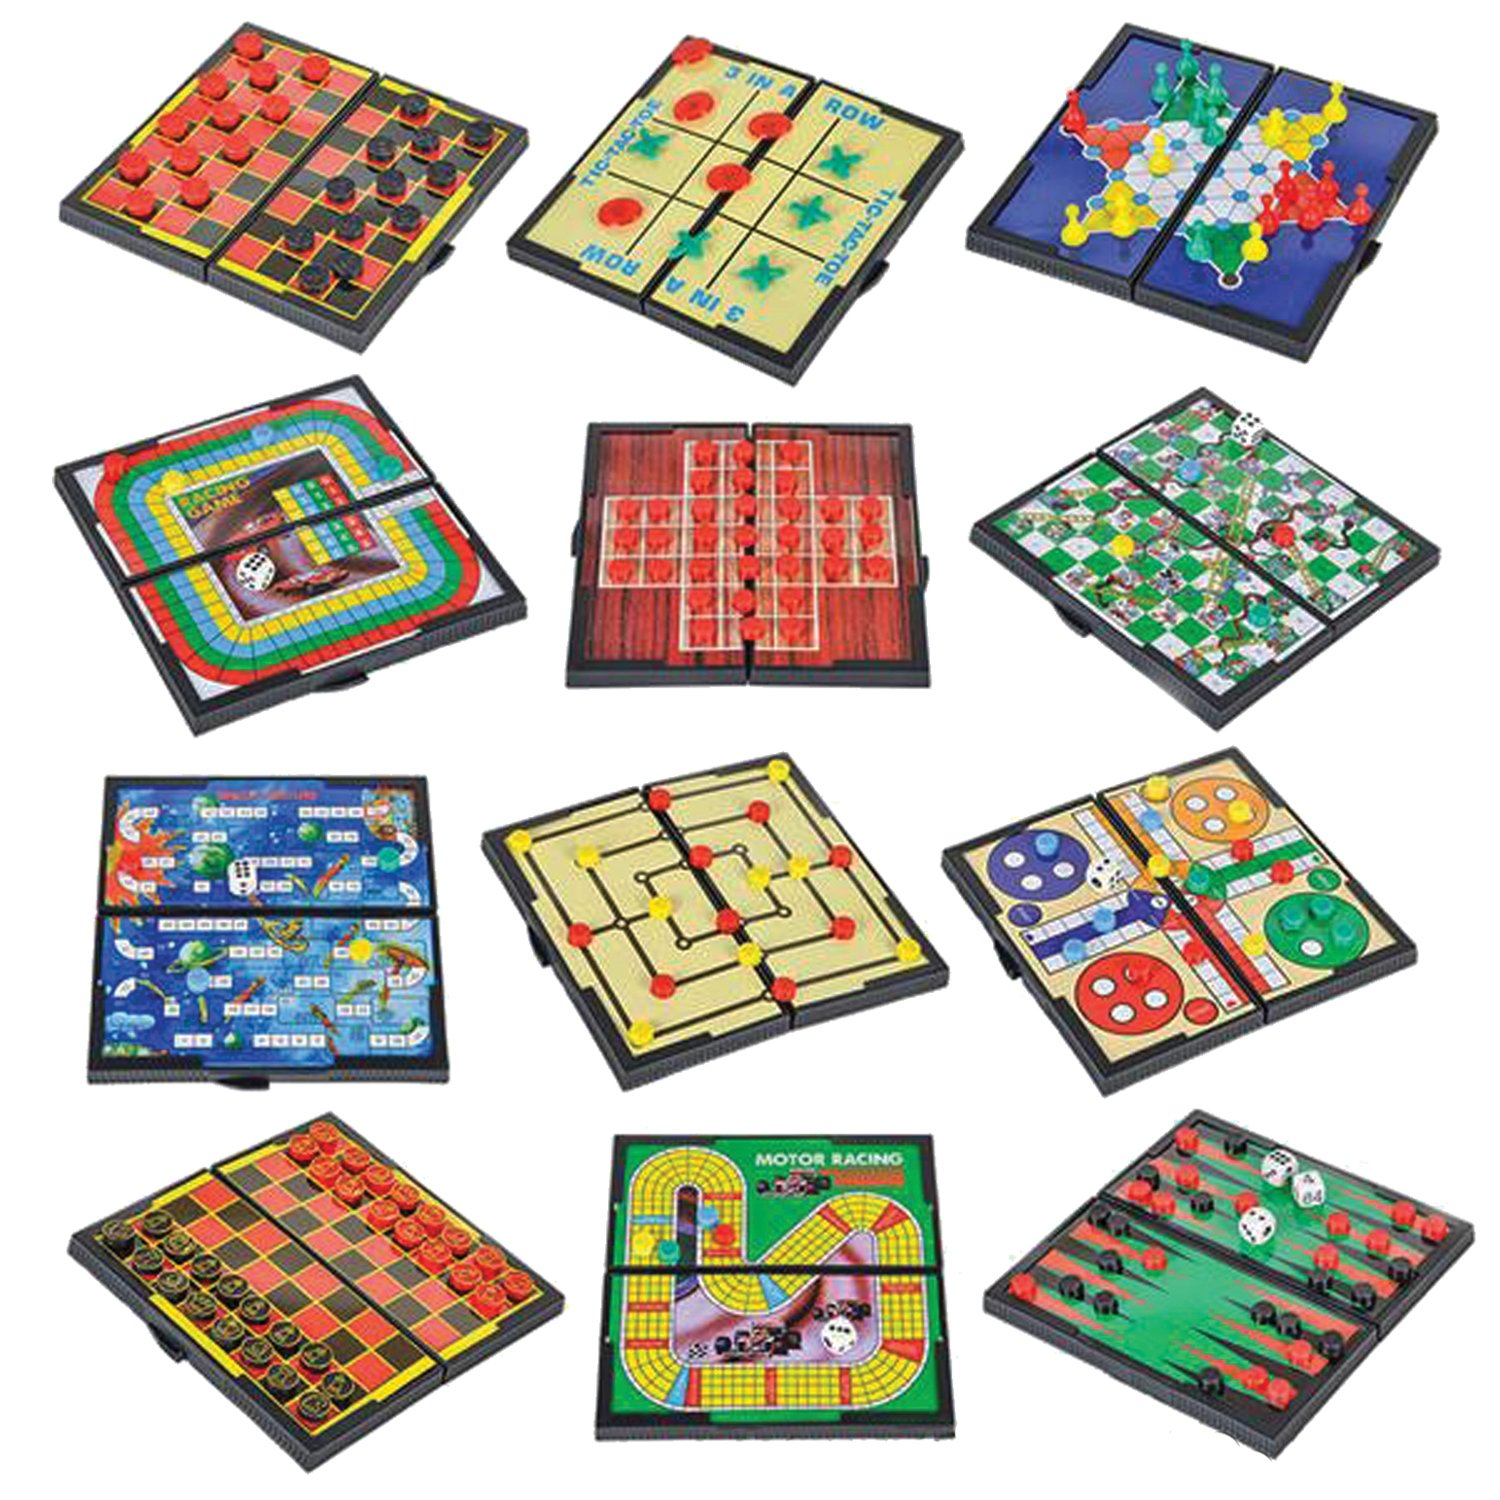 Gamie Magnetic Board Game Set Includes 12 Retro Fun Games - 5'' Compact Design - Individually Boxed - Teaches Strategy & Focus - Great for Road Trip/ Travel/ Camping - Best Gift for Kids Ages 6+